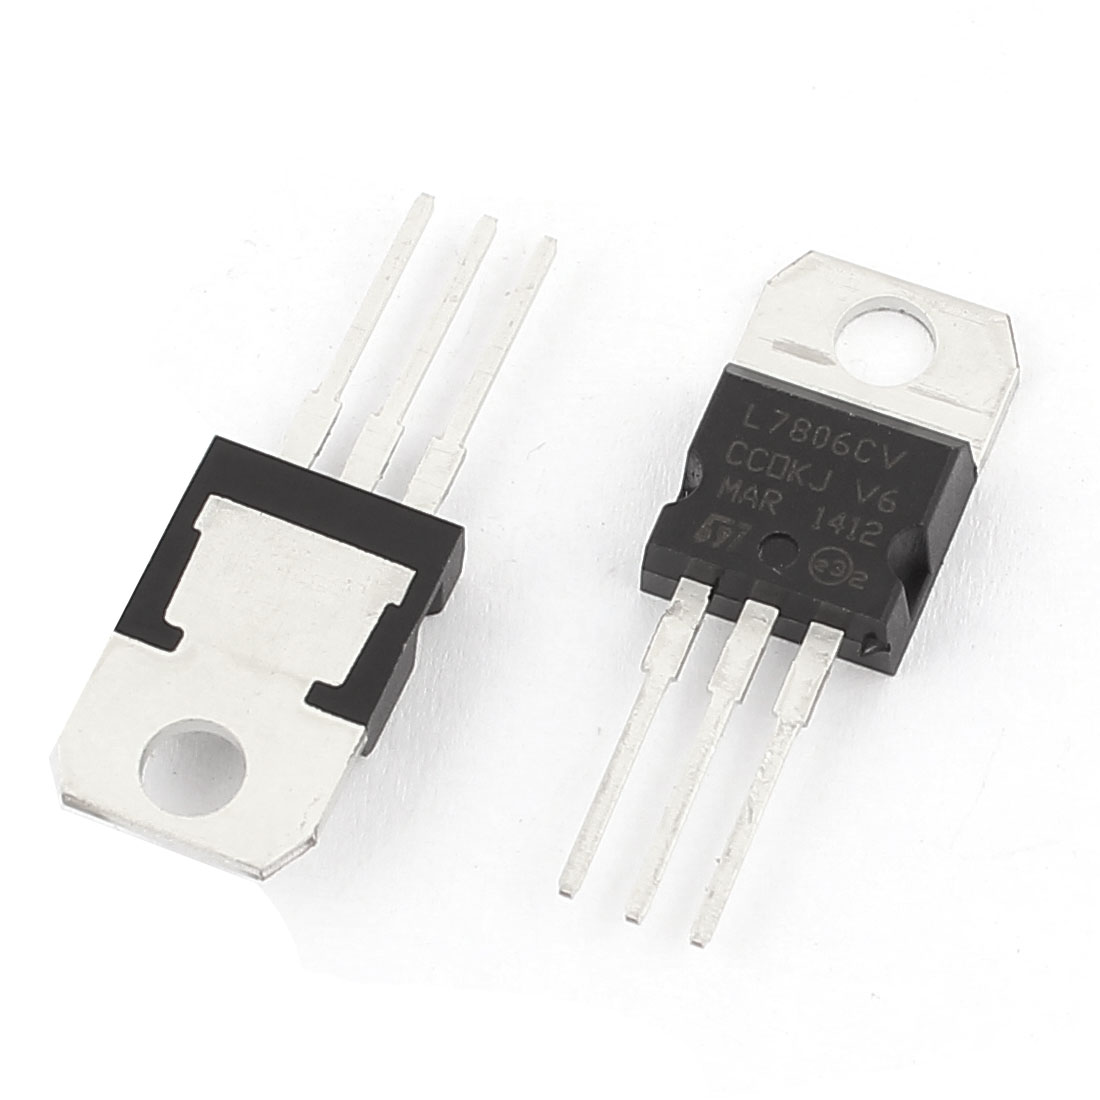 2 Pcs L7806CV 3 Terminals Negative Voltage Regulator 1.5A 6V TO-220 Package